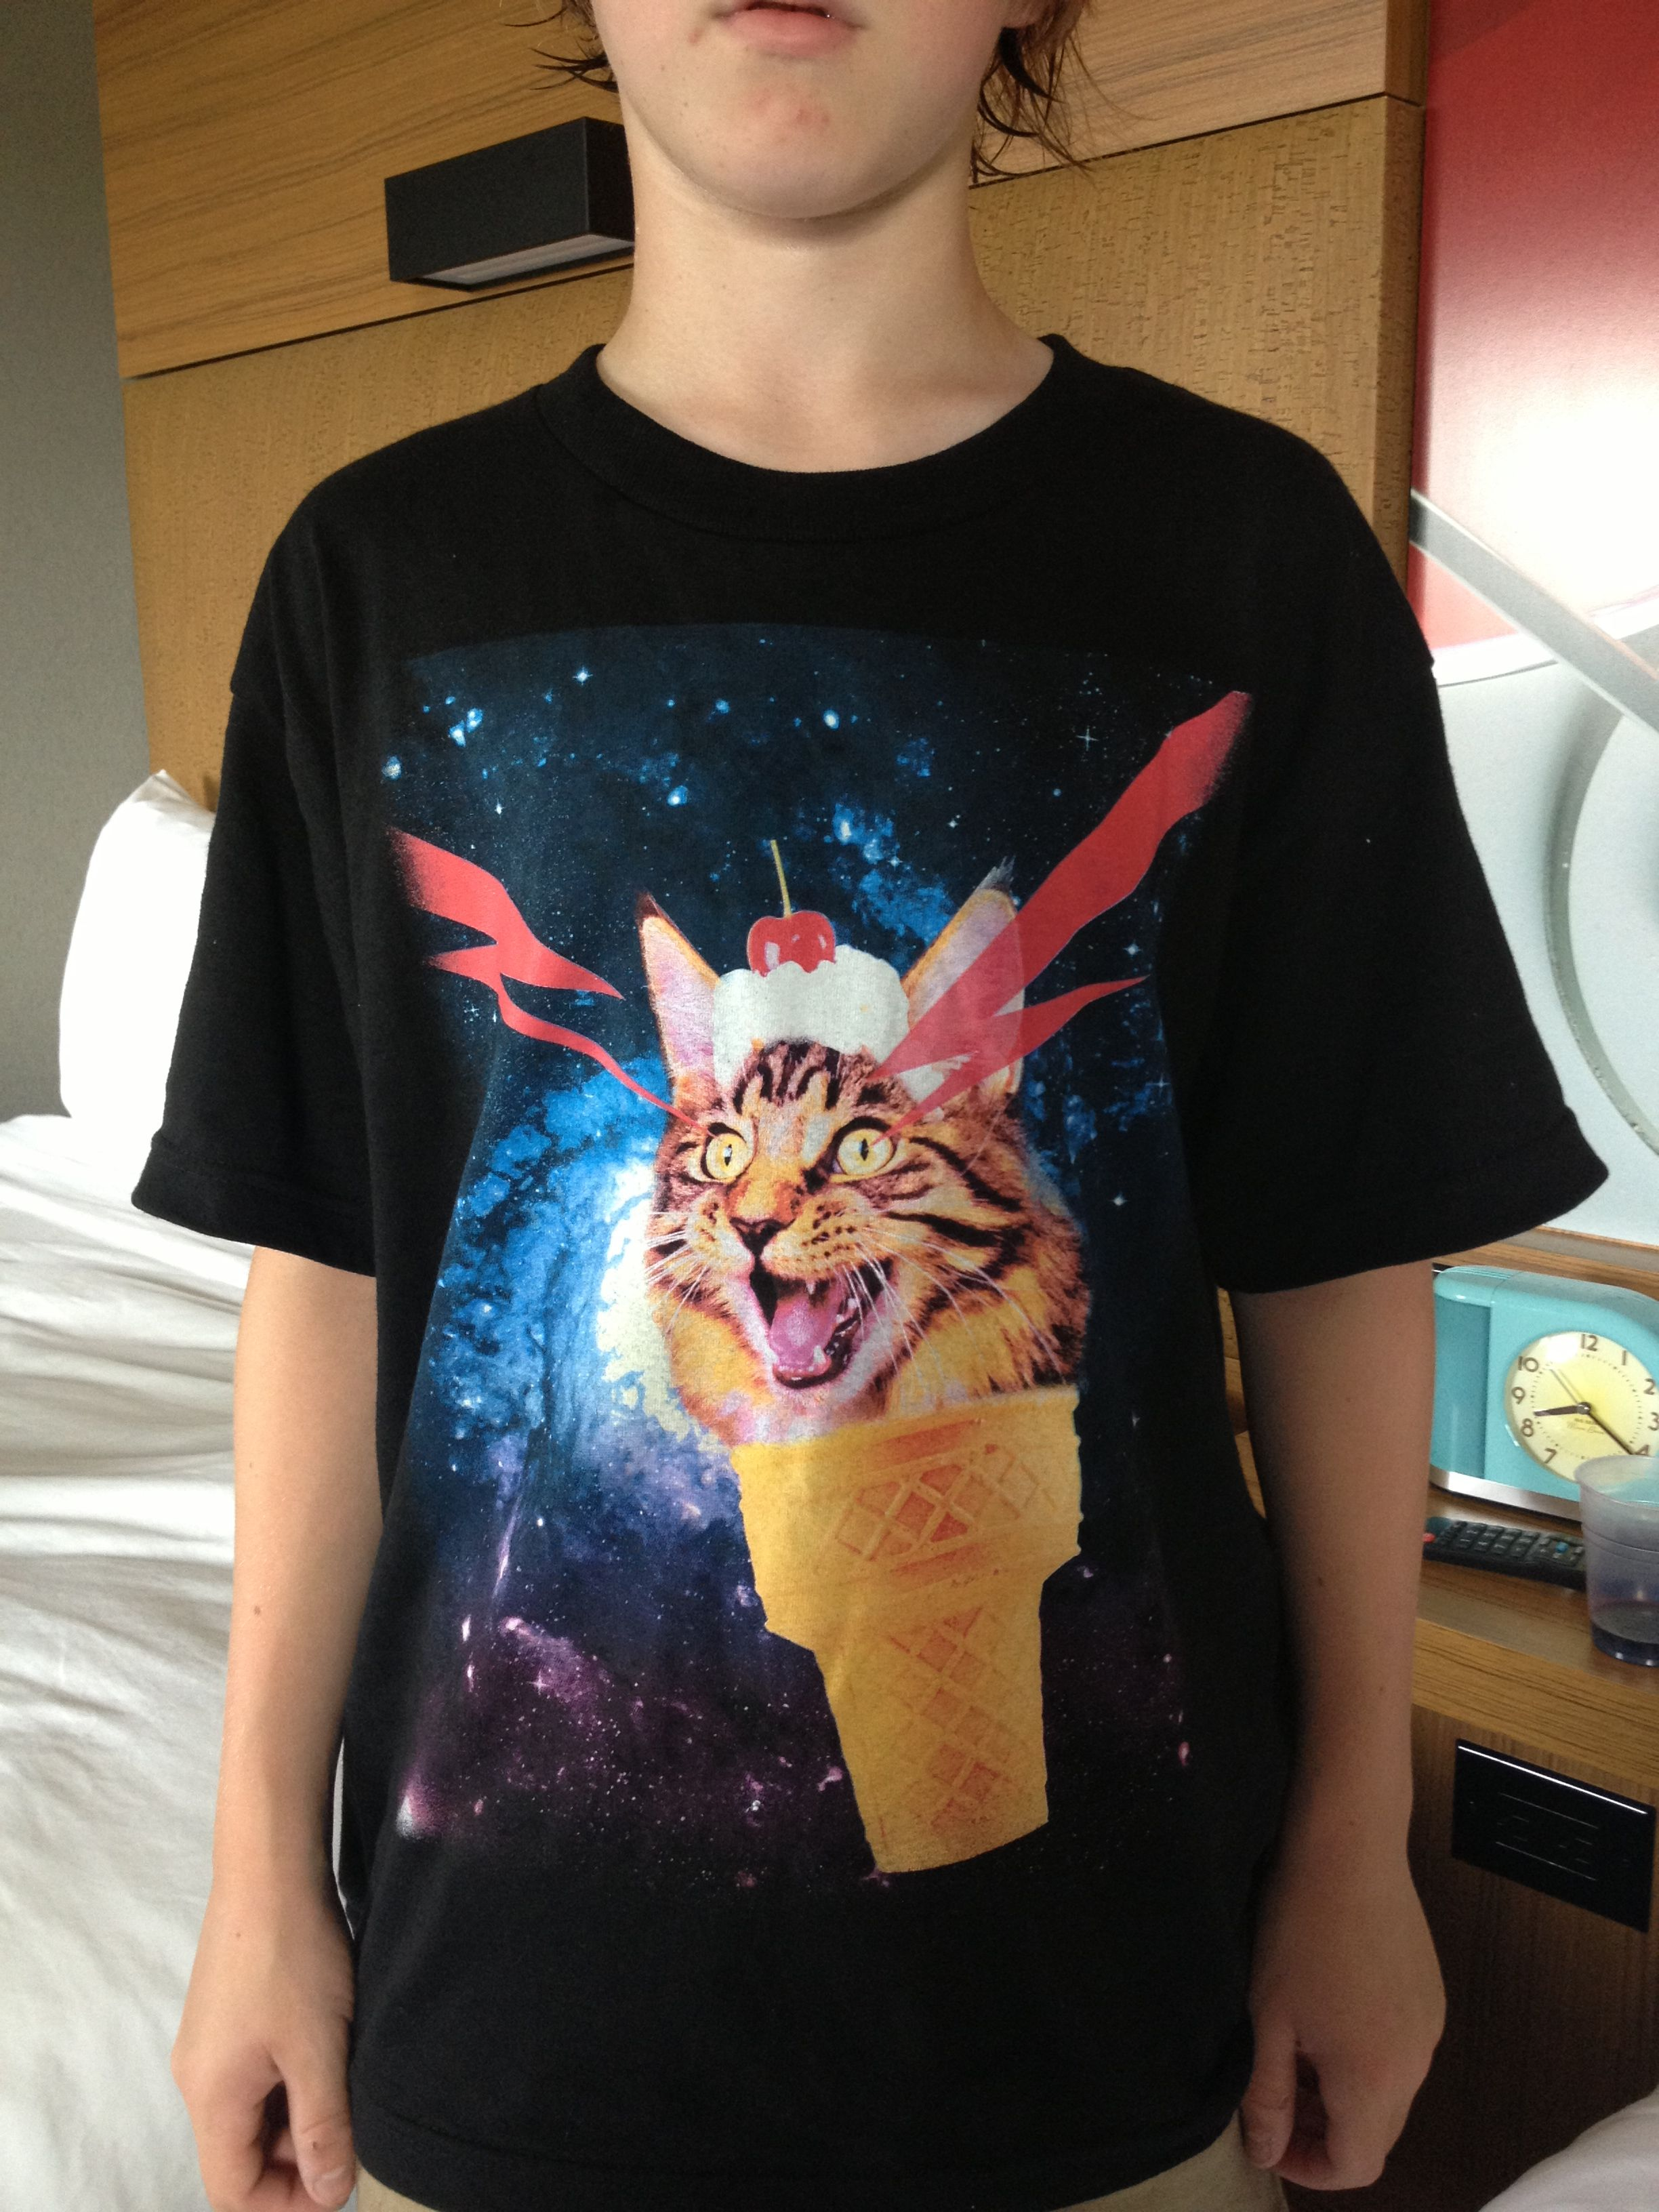 Coolest T-shirt ever.